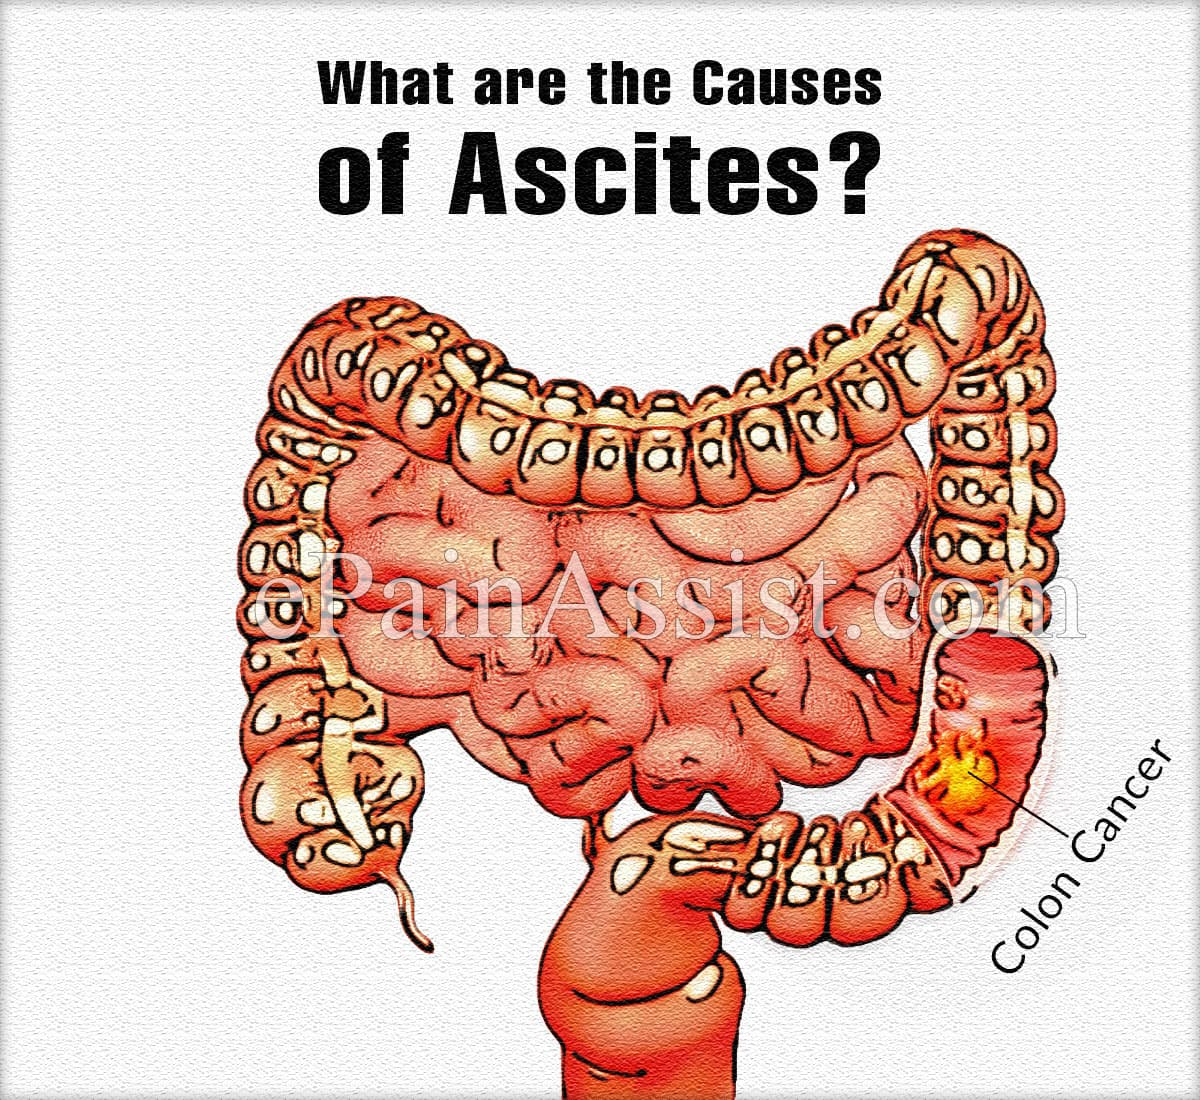 What are the Causes of Ascites?